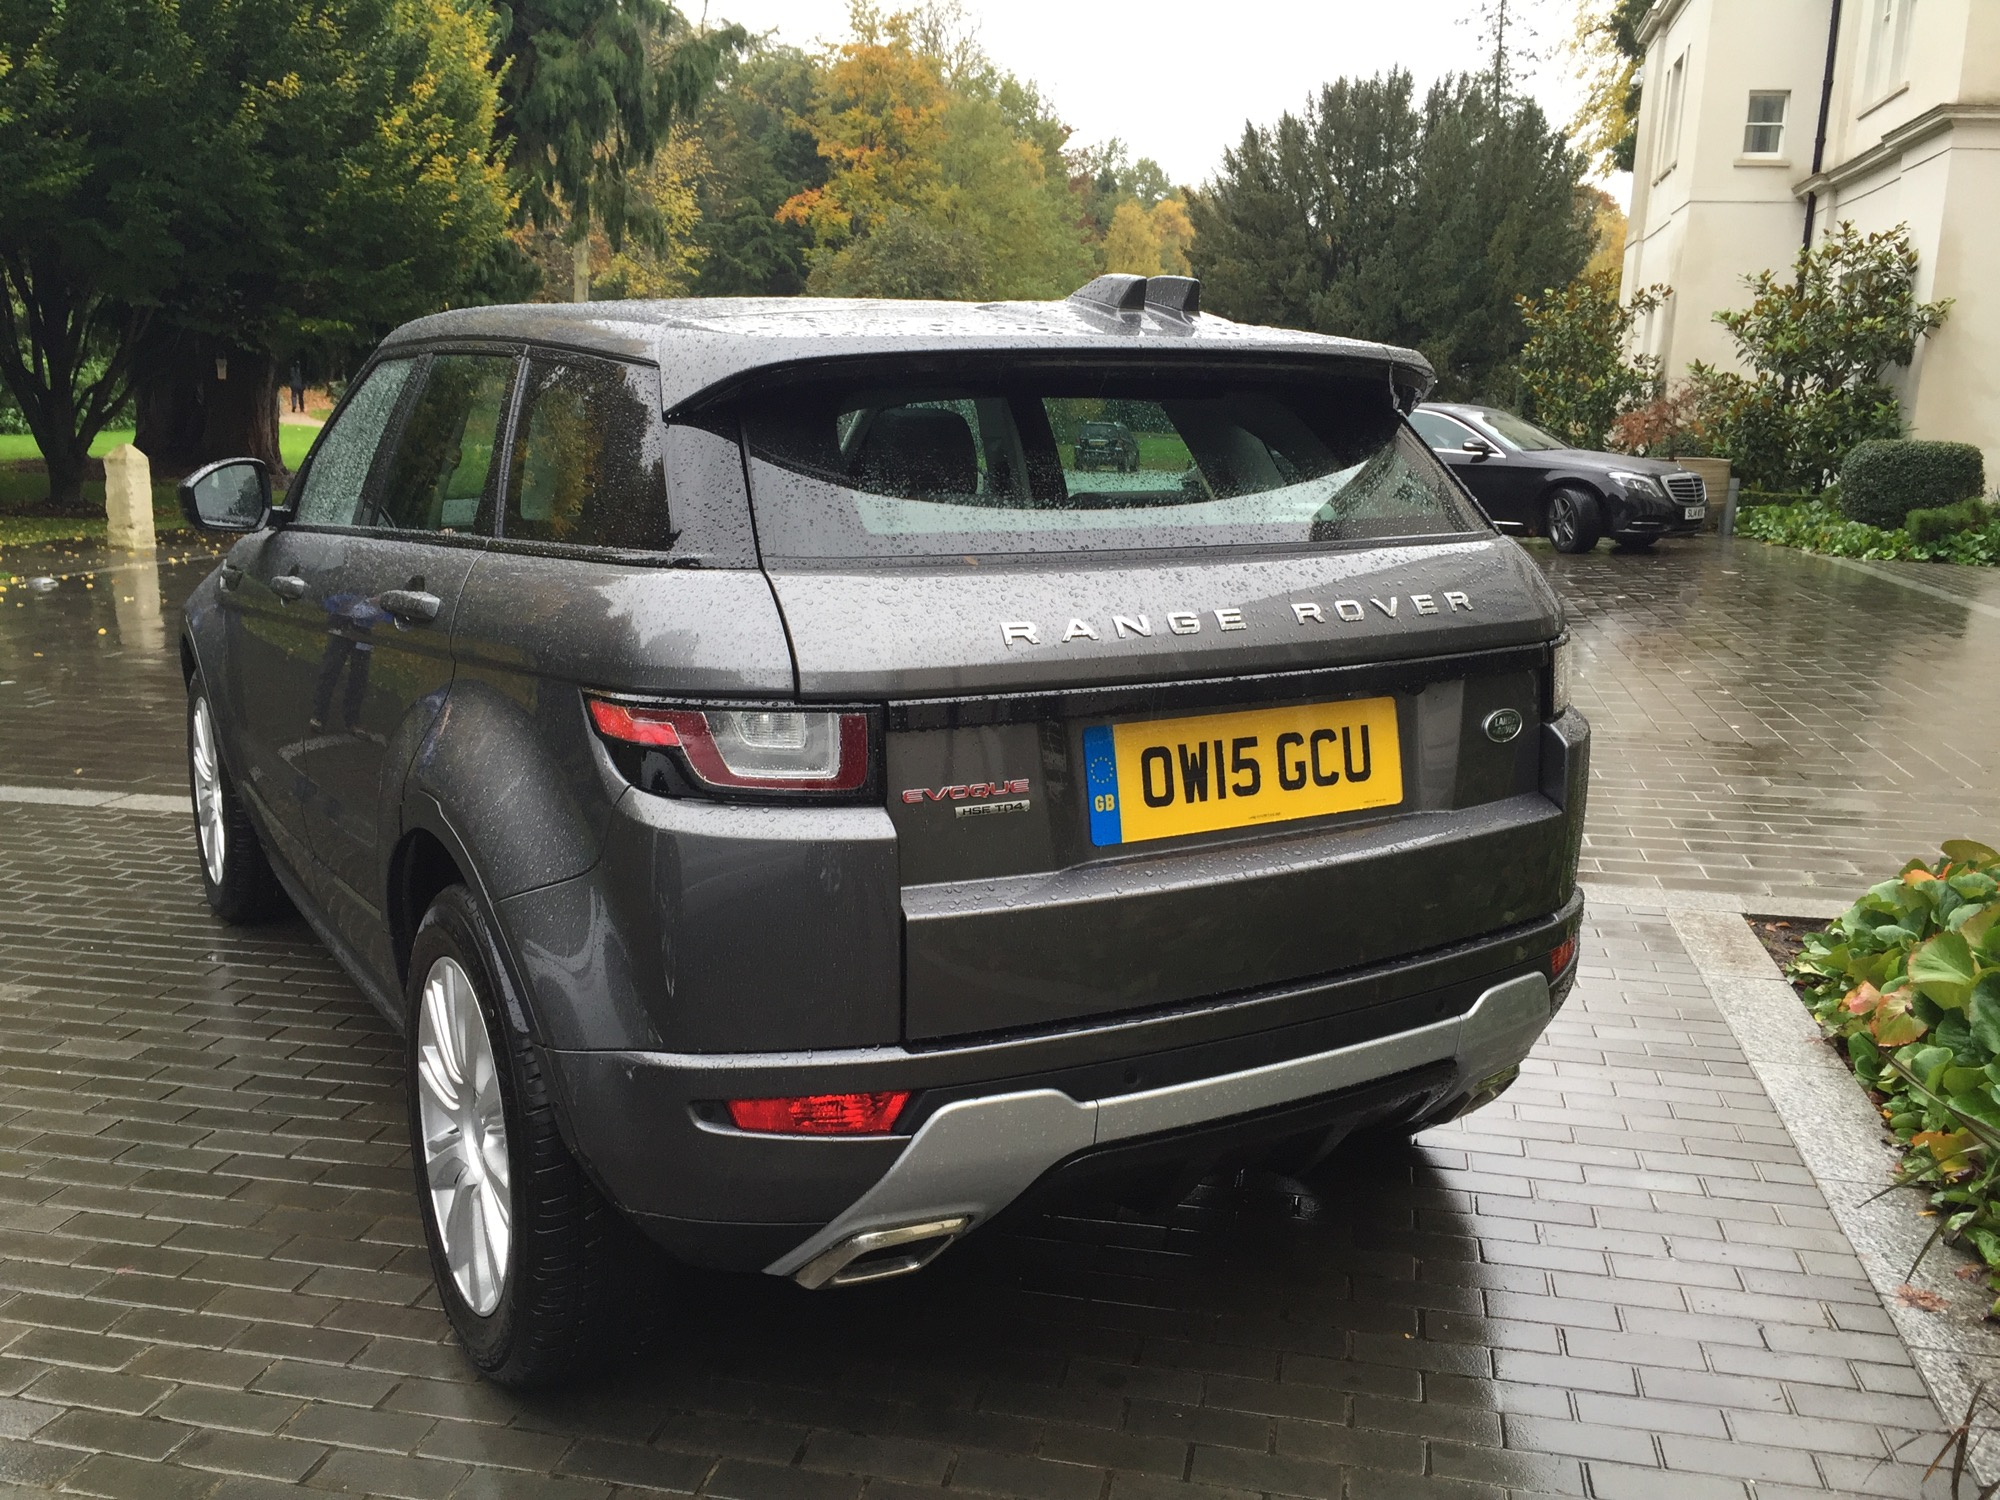 2016 range rover evoque review first drive photos caradvice. Black Bedroom Furniture Sets. Home Design Ideas